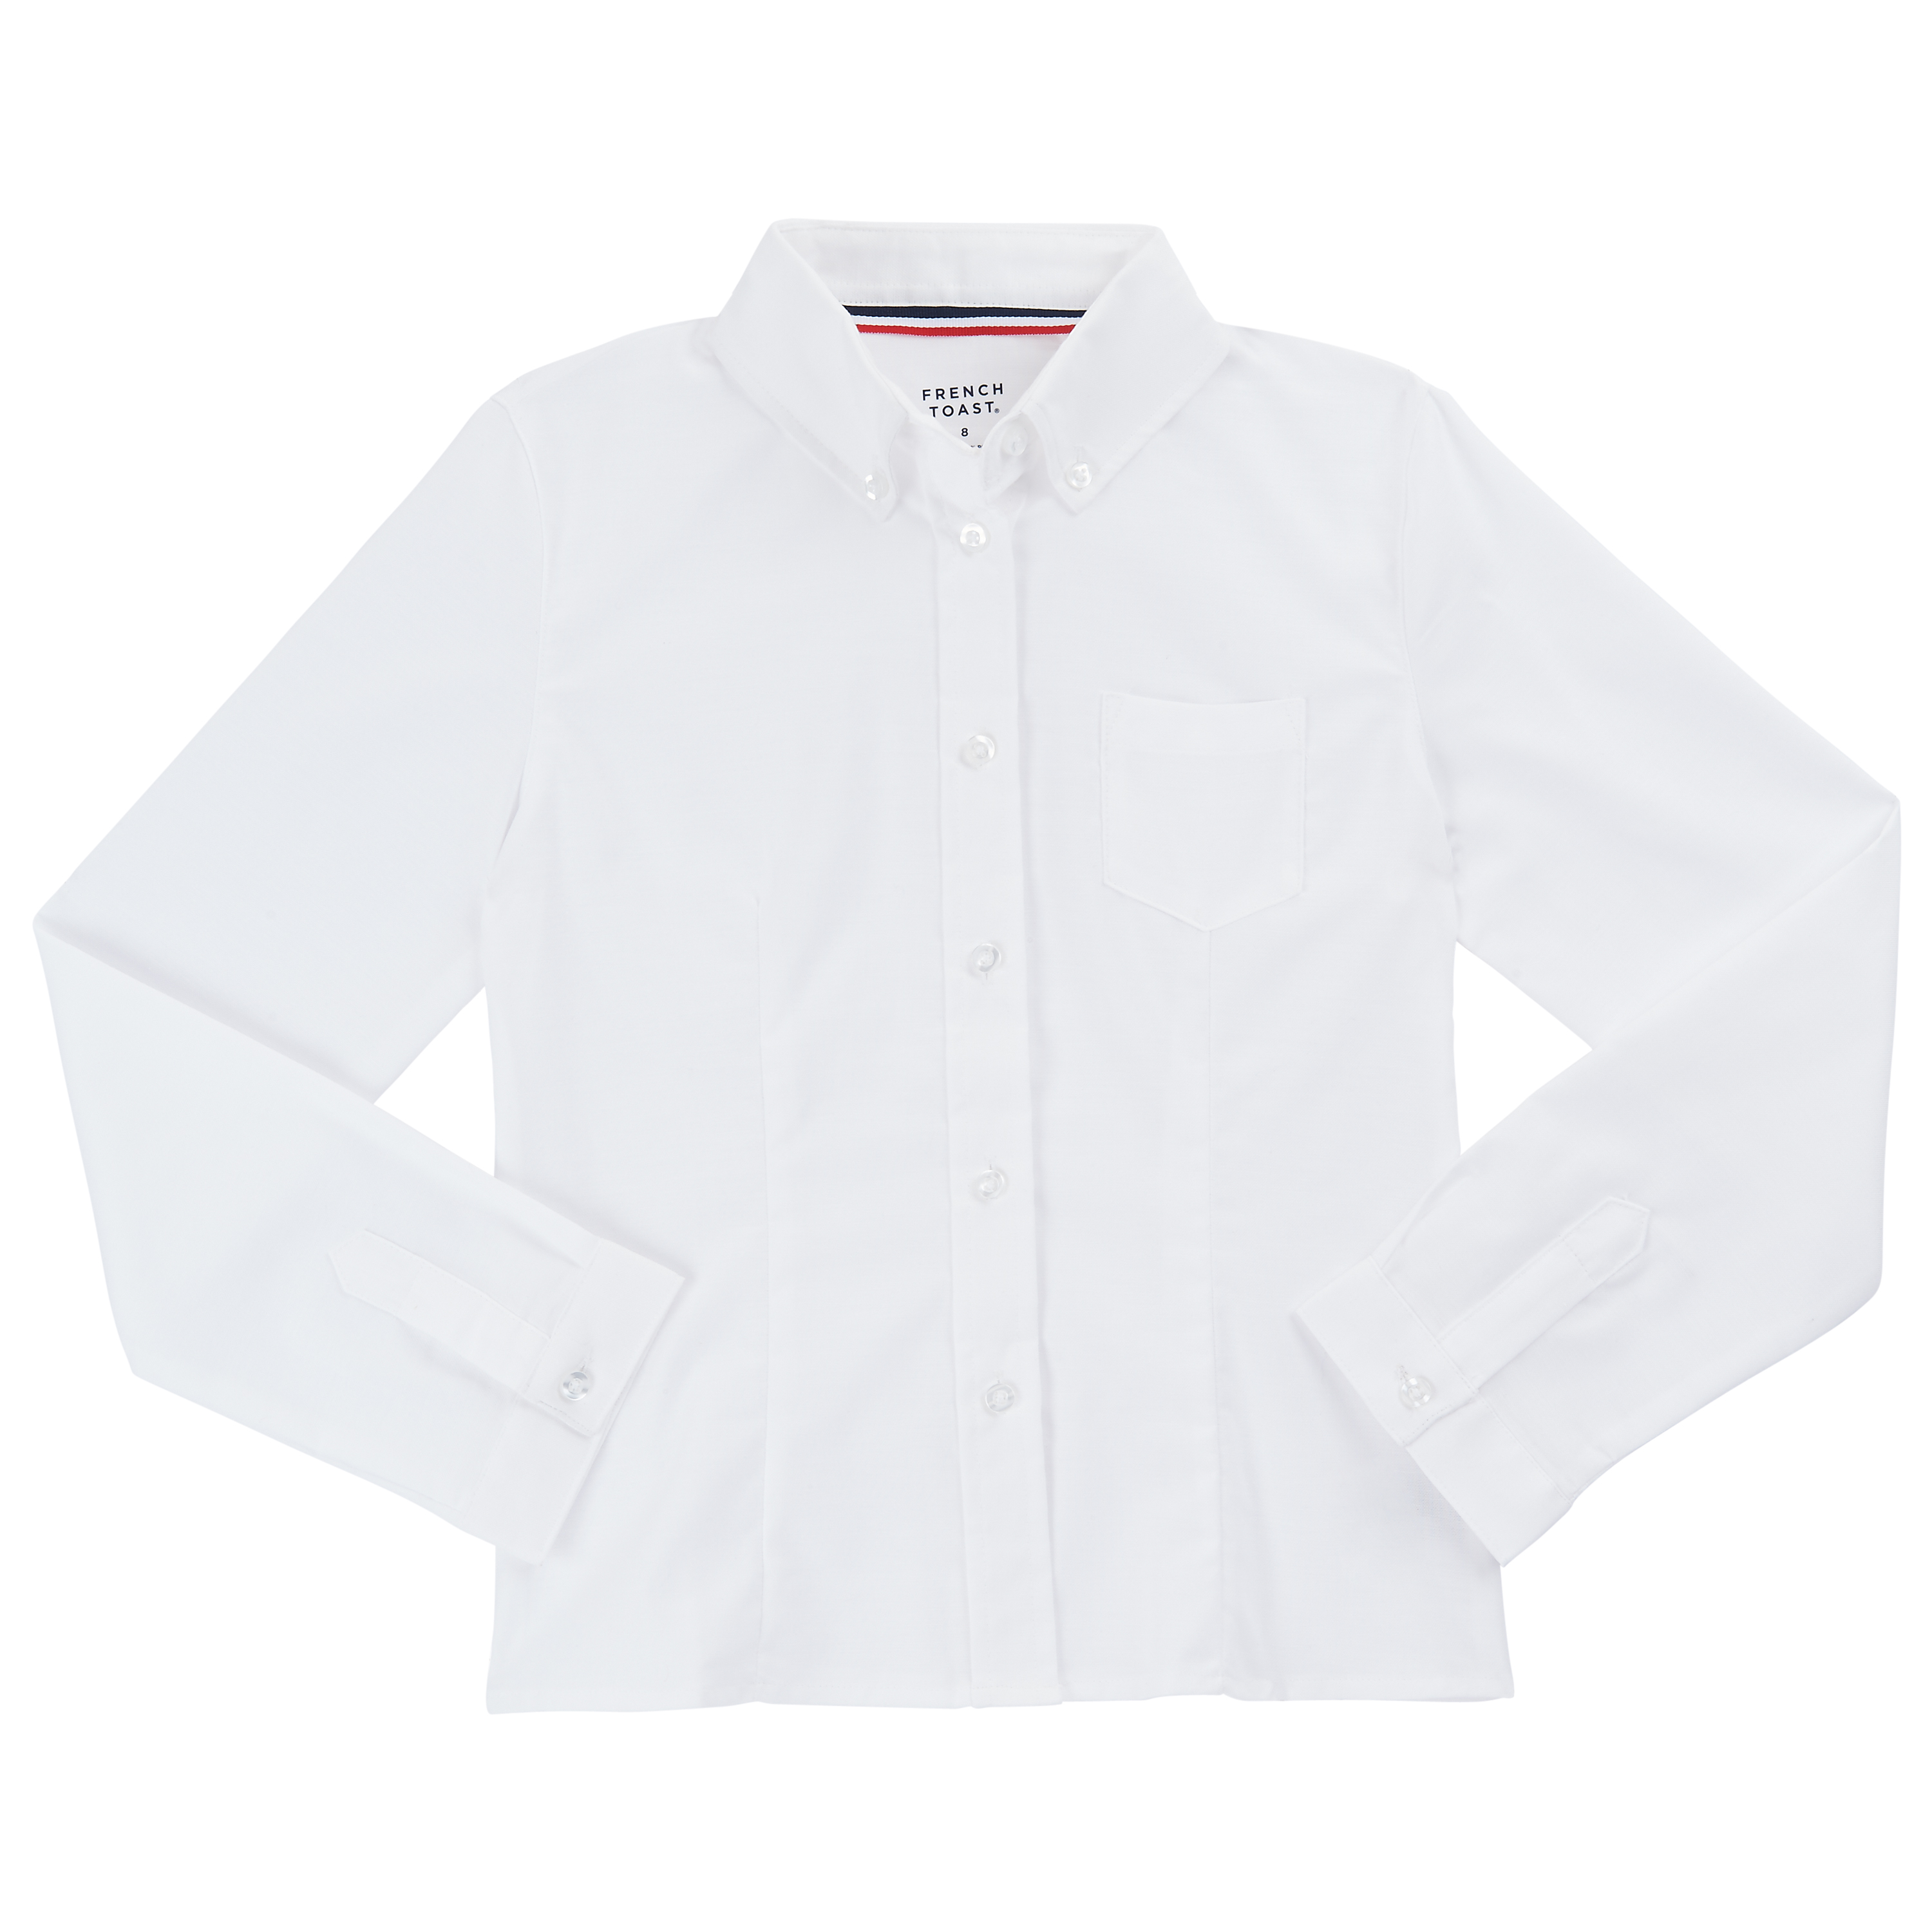 White Oxford- Long Sleeve Shirt (Adult Sizes S-4XL)